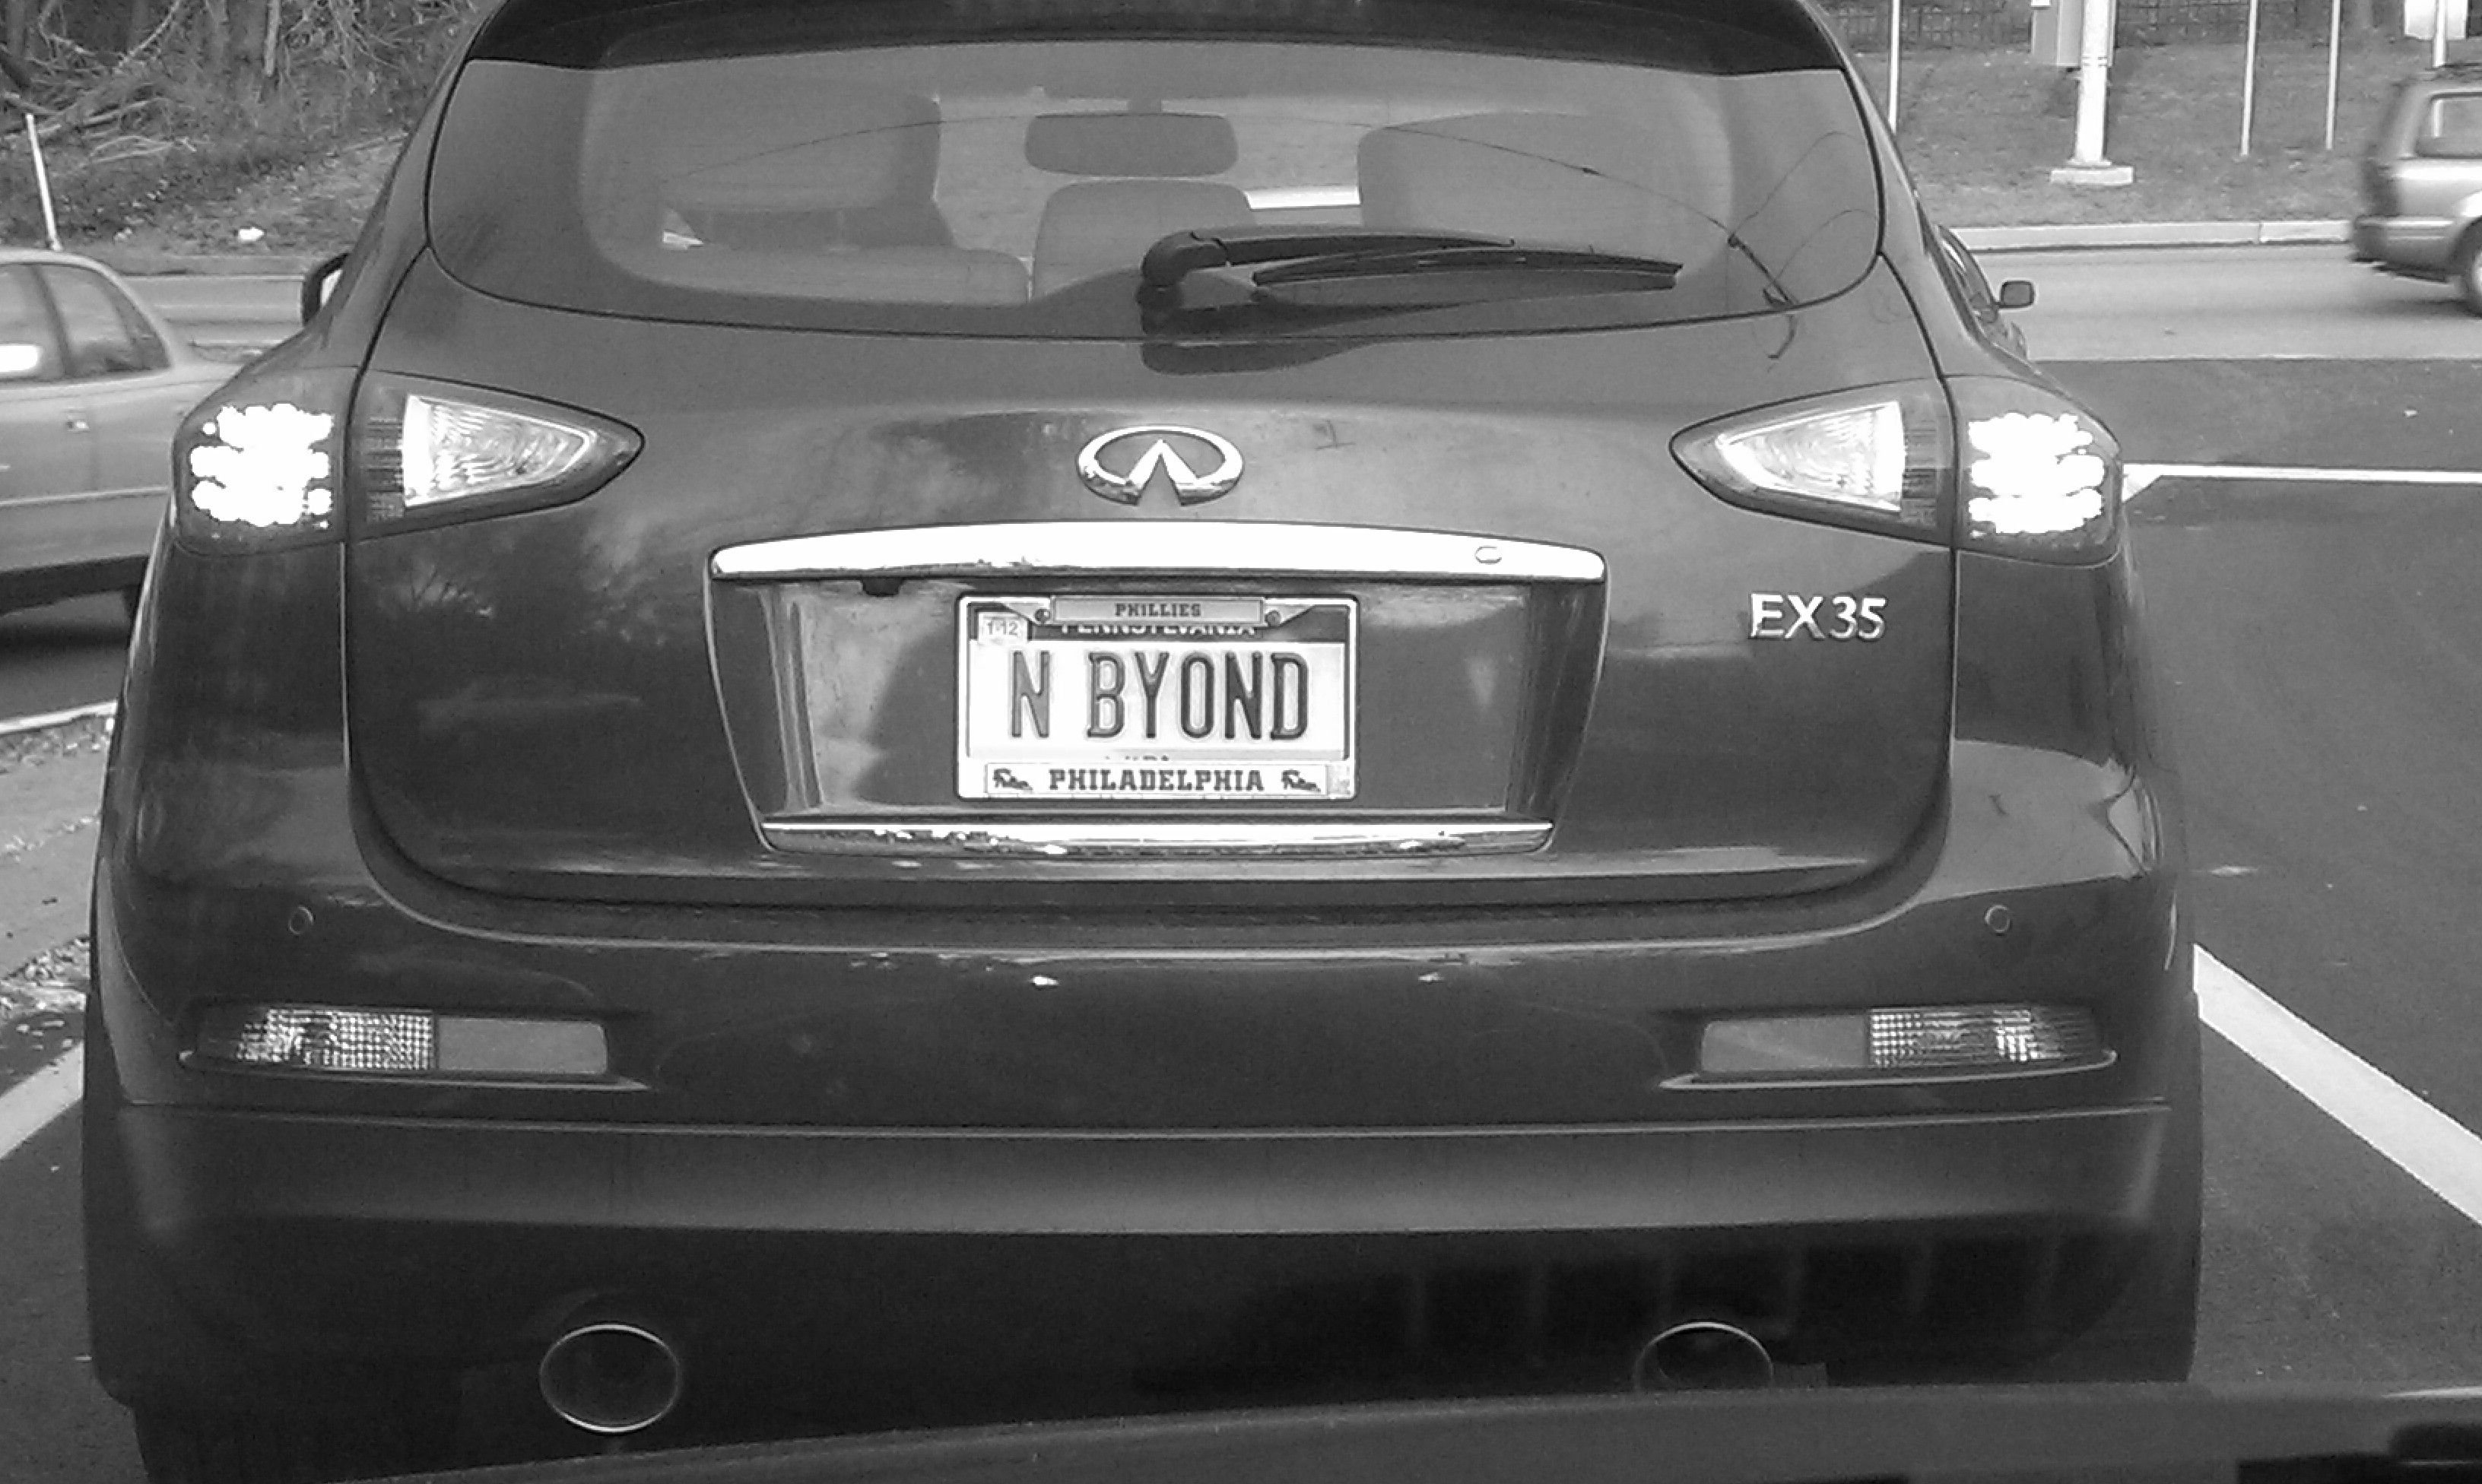 Thoughtful vanity plates make me = ) | Vanity Plates | Pinterest ...